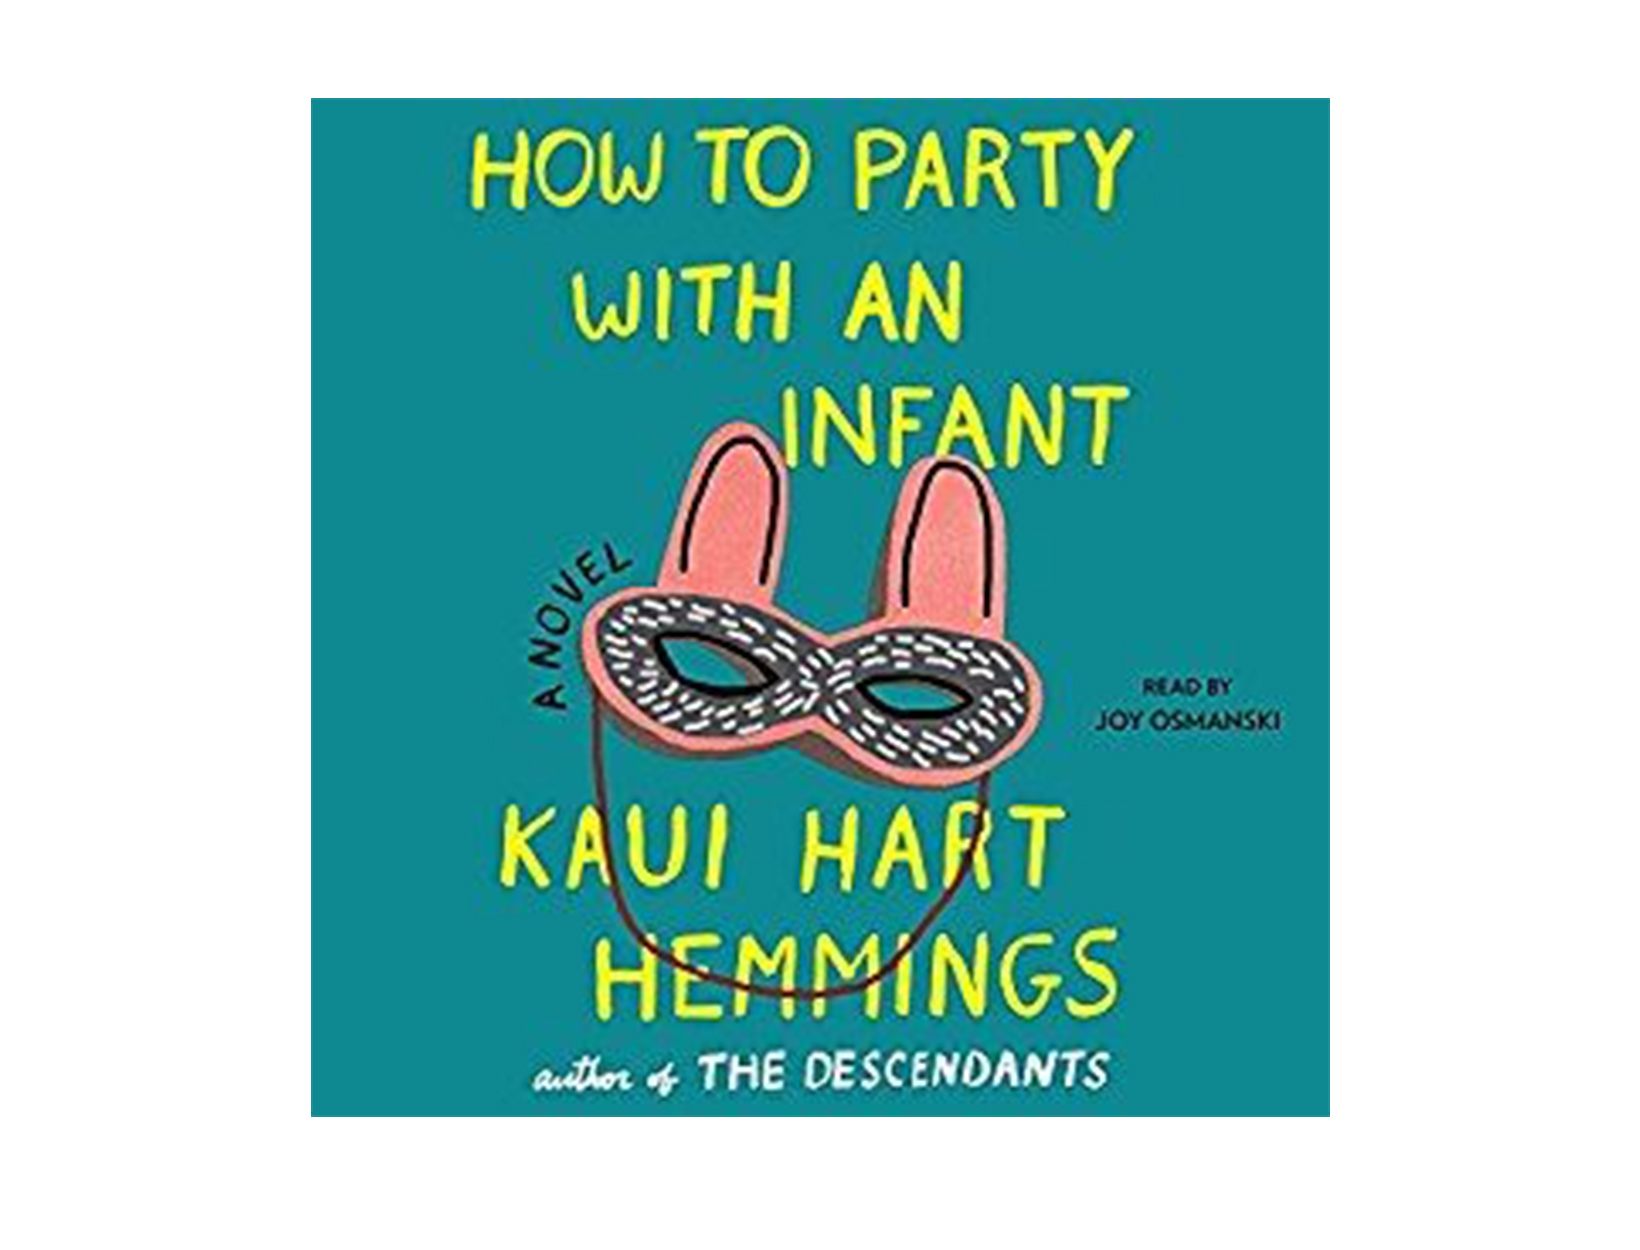 How to Party With an Infant by Kaui Hart Hemmings, read by Joy Osmanski